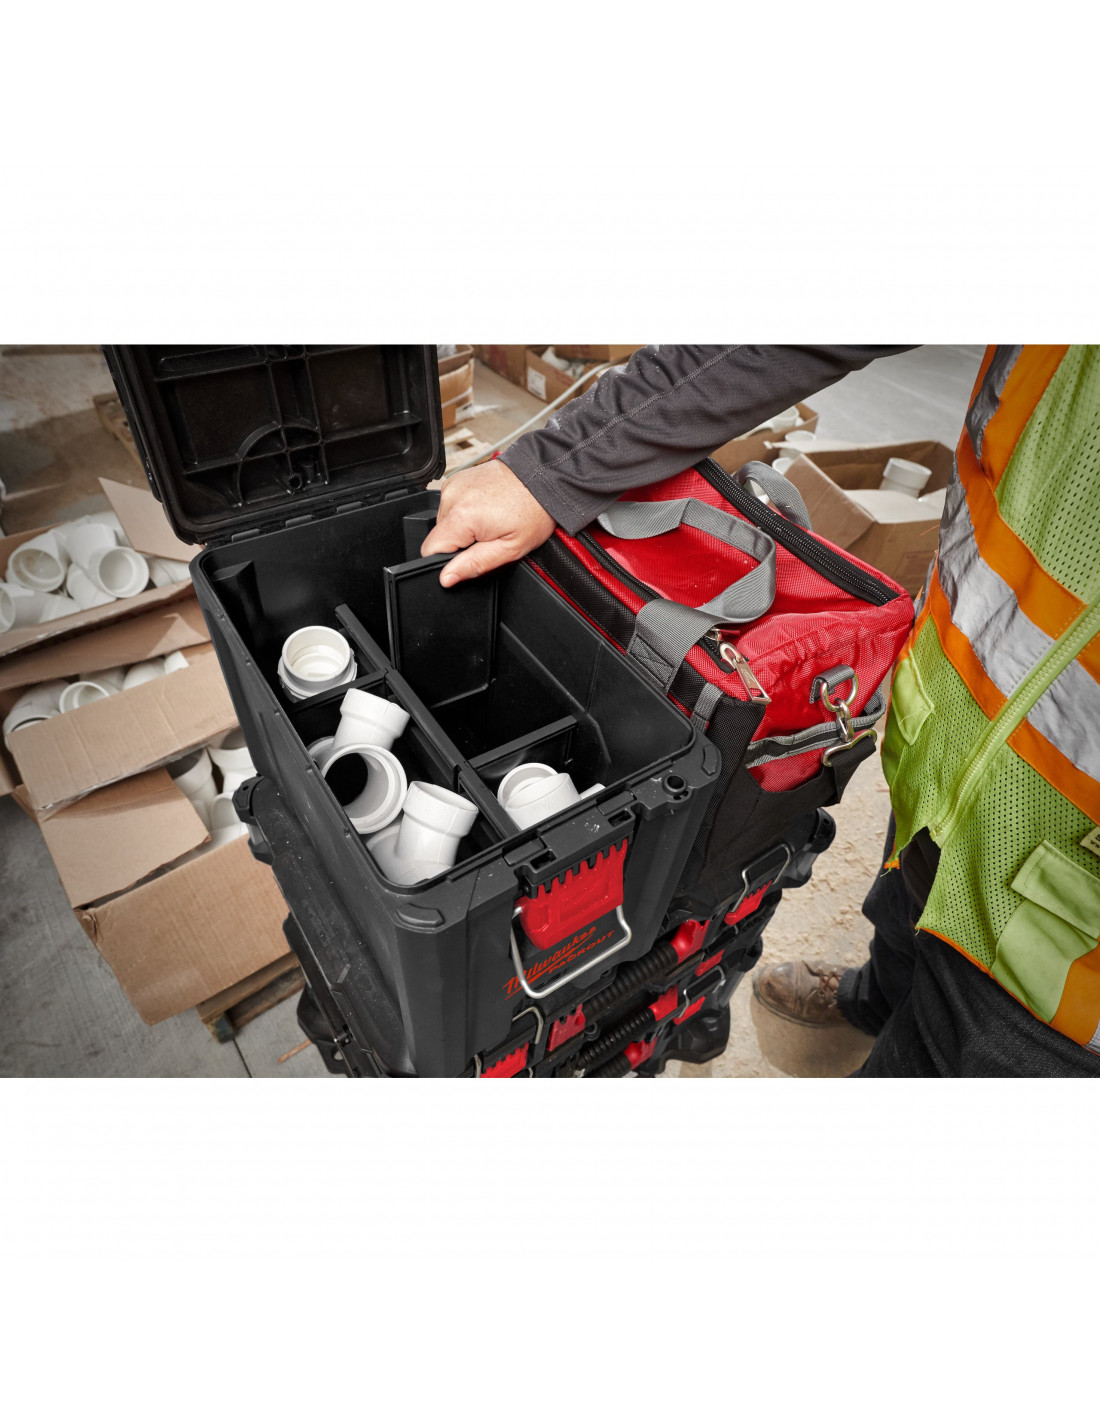 Milwaukee packout Compact Box packout ™ Compacte Boîte 4932471723